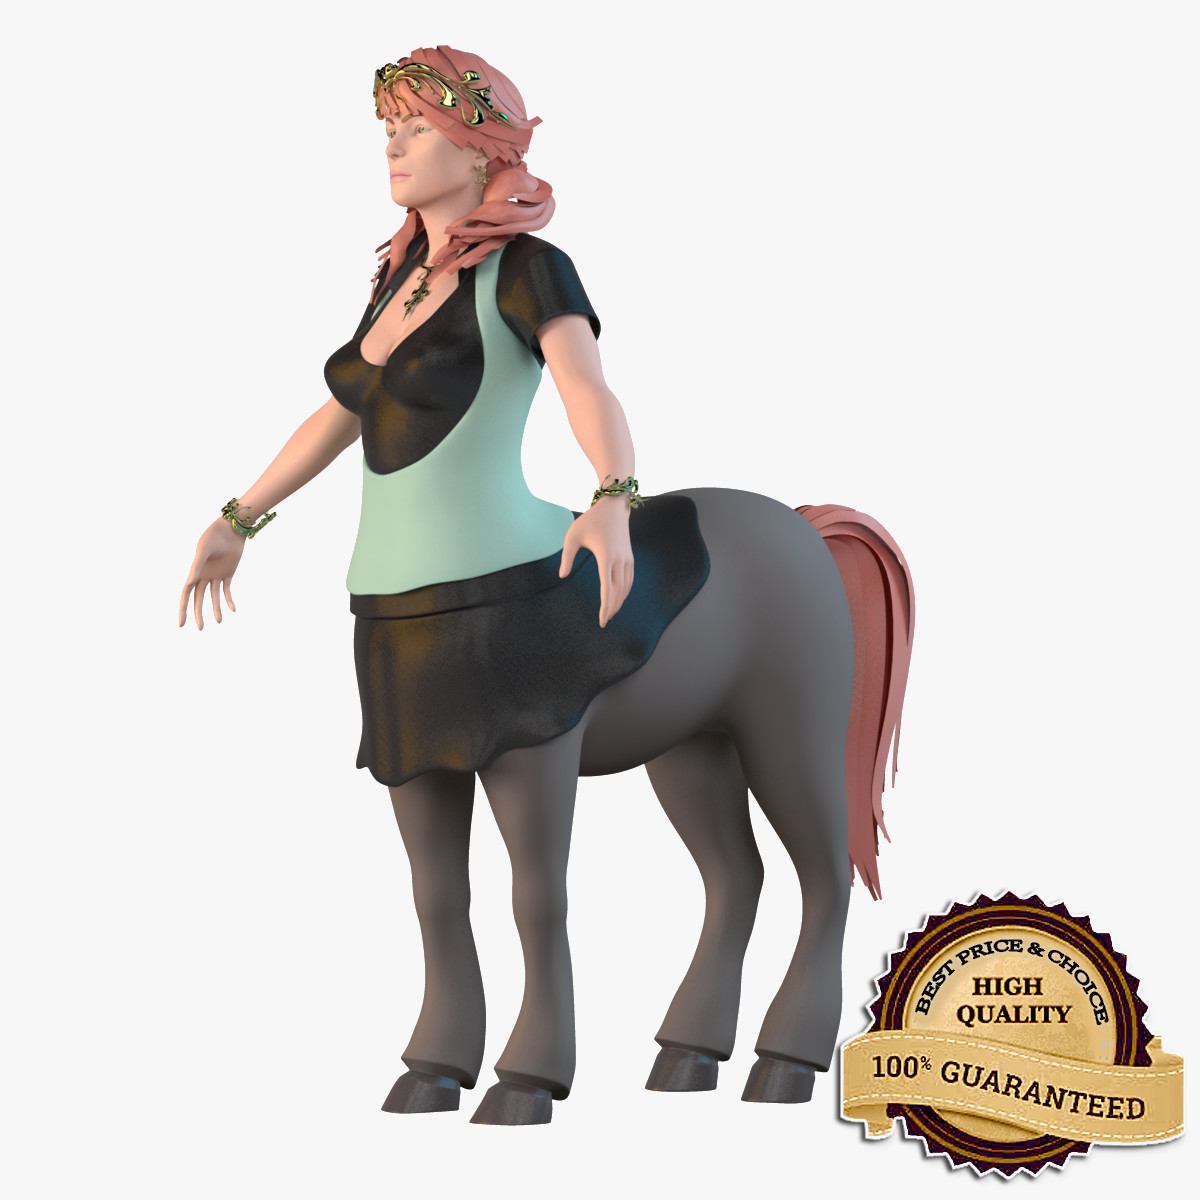 Female Centaur PNG - 13639